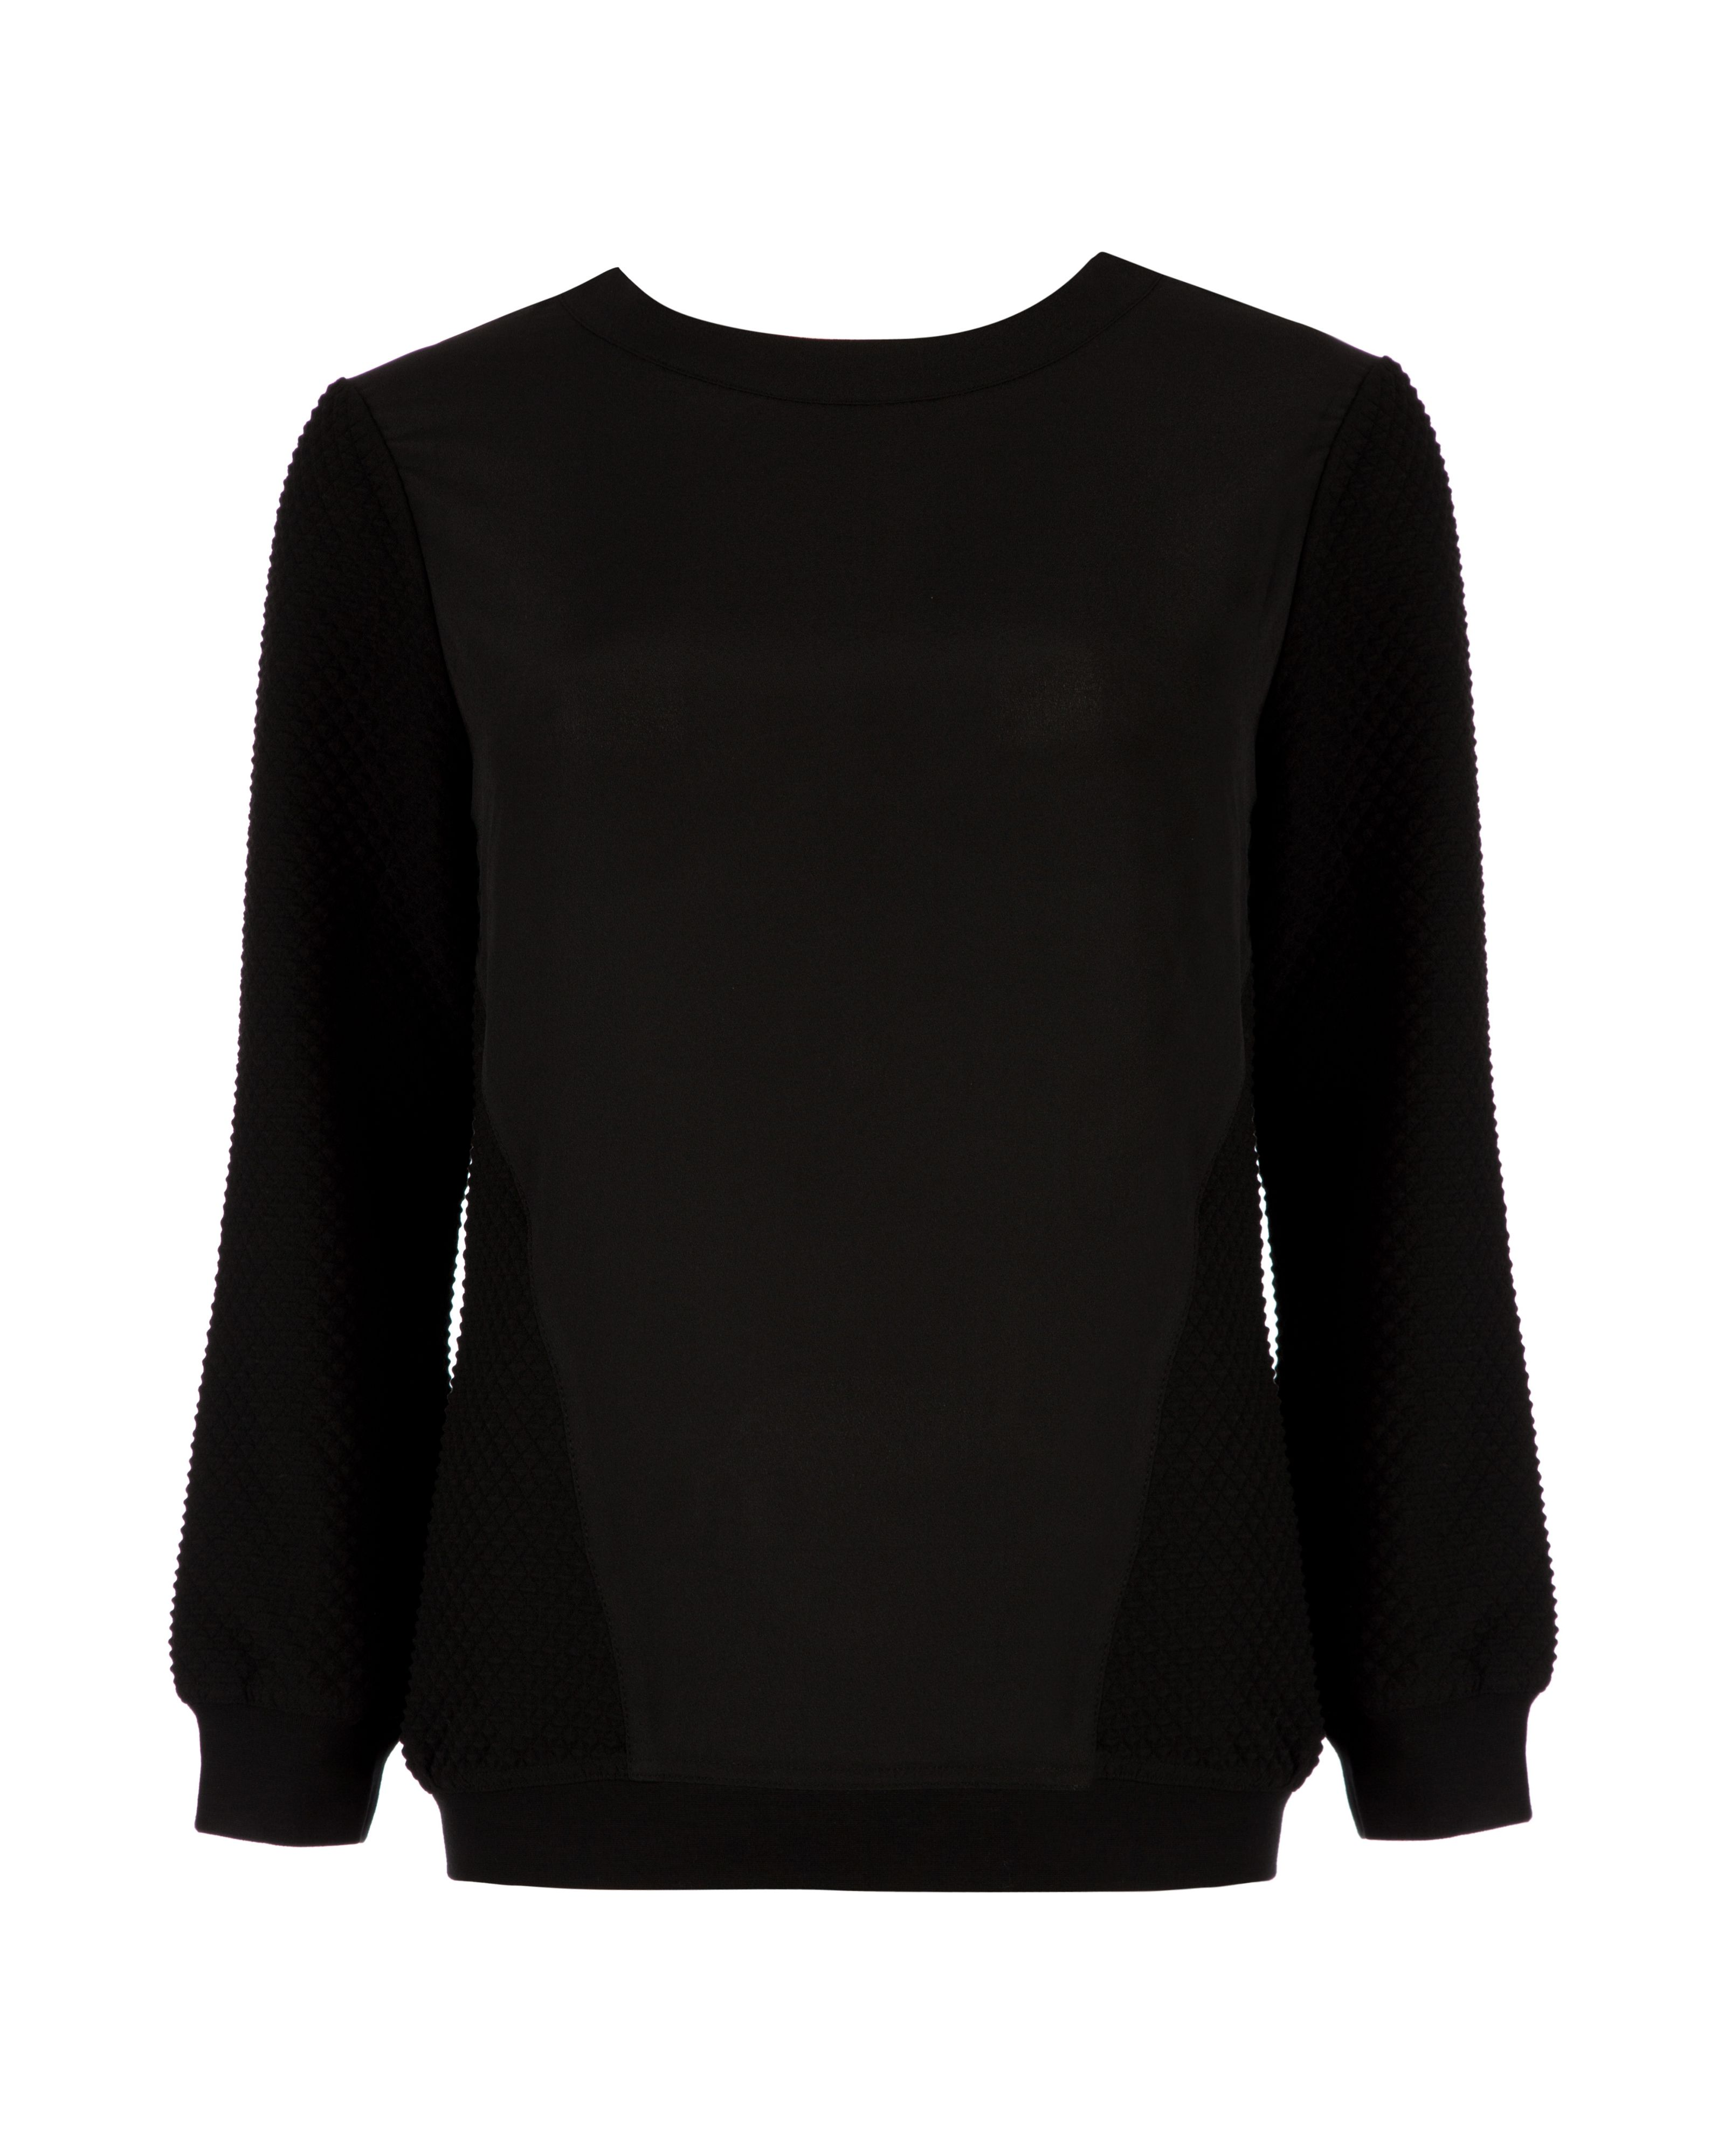 Snowia sporty luxe sweater